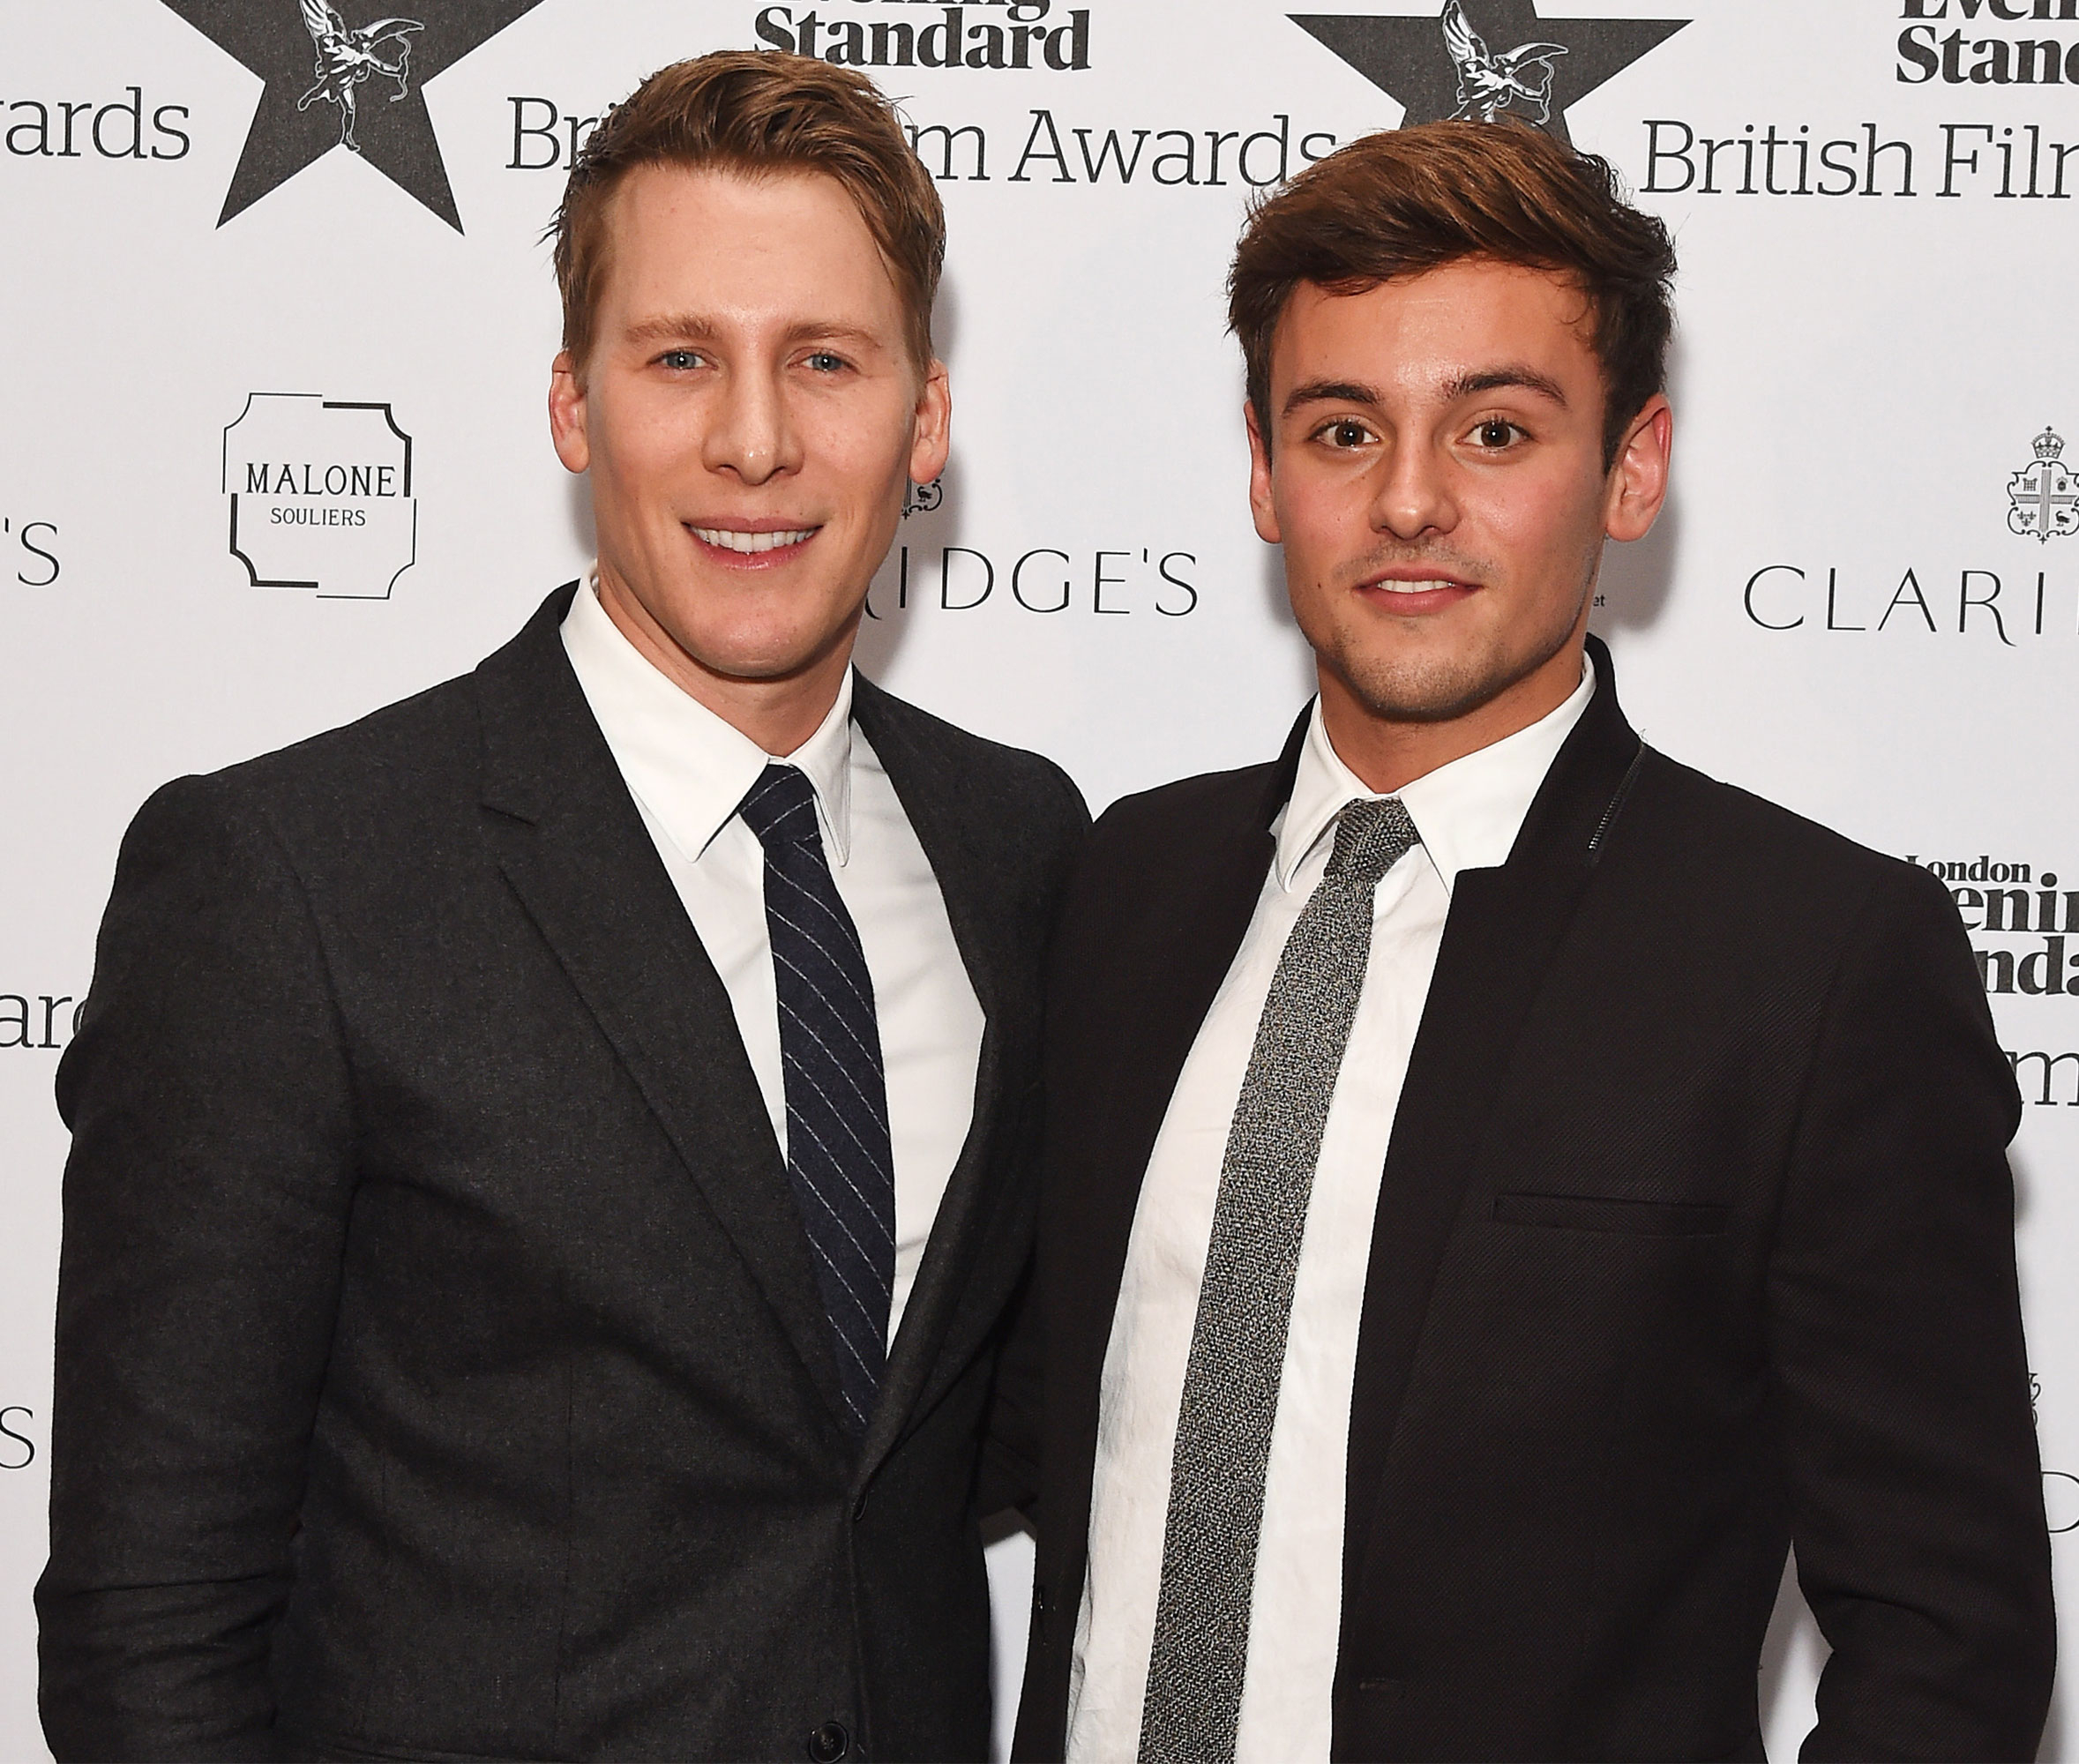 Tom Daley and Dustin Lance Black Are Expecting Their First Child